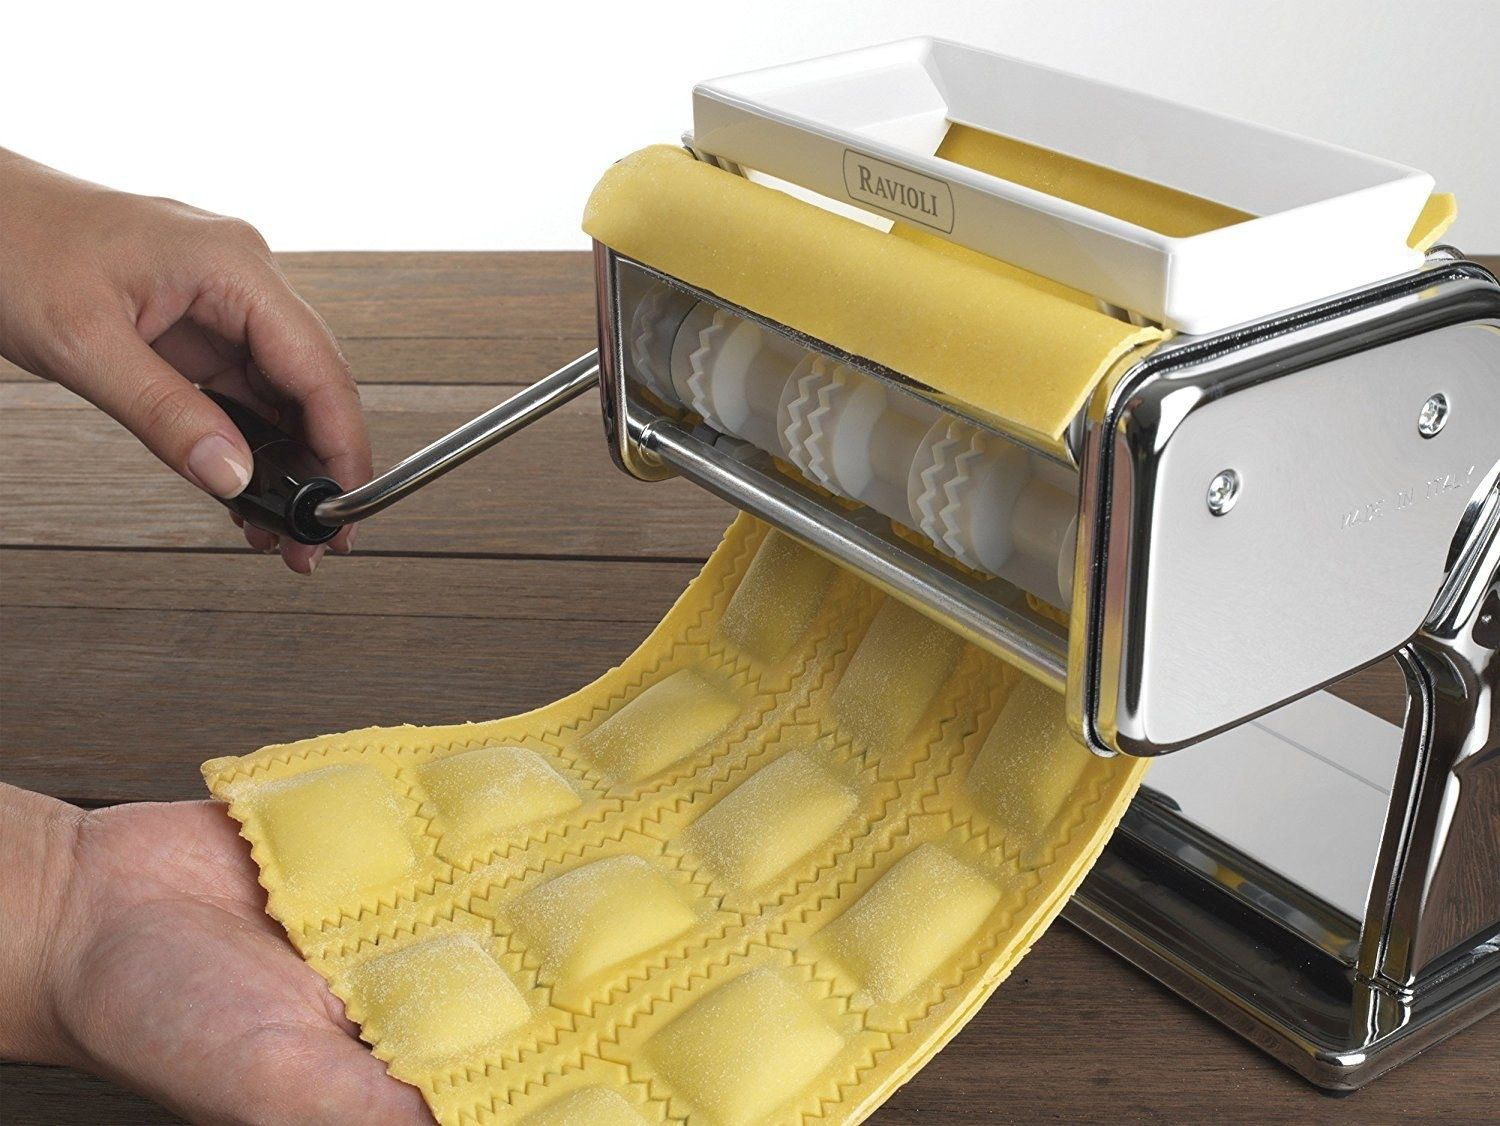 The Ultimate Gift Guide For Cooks Of All Levels Pasta Maker Pasta Machine Ravioli Cutter